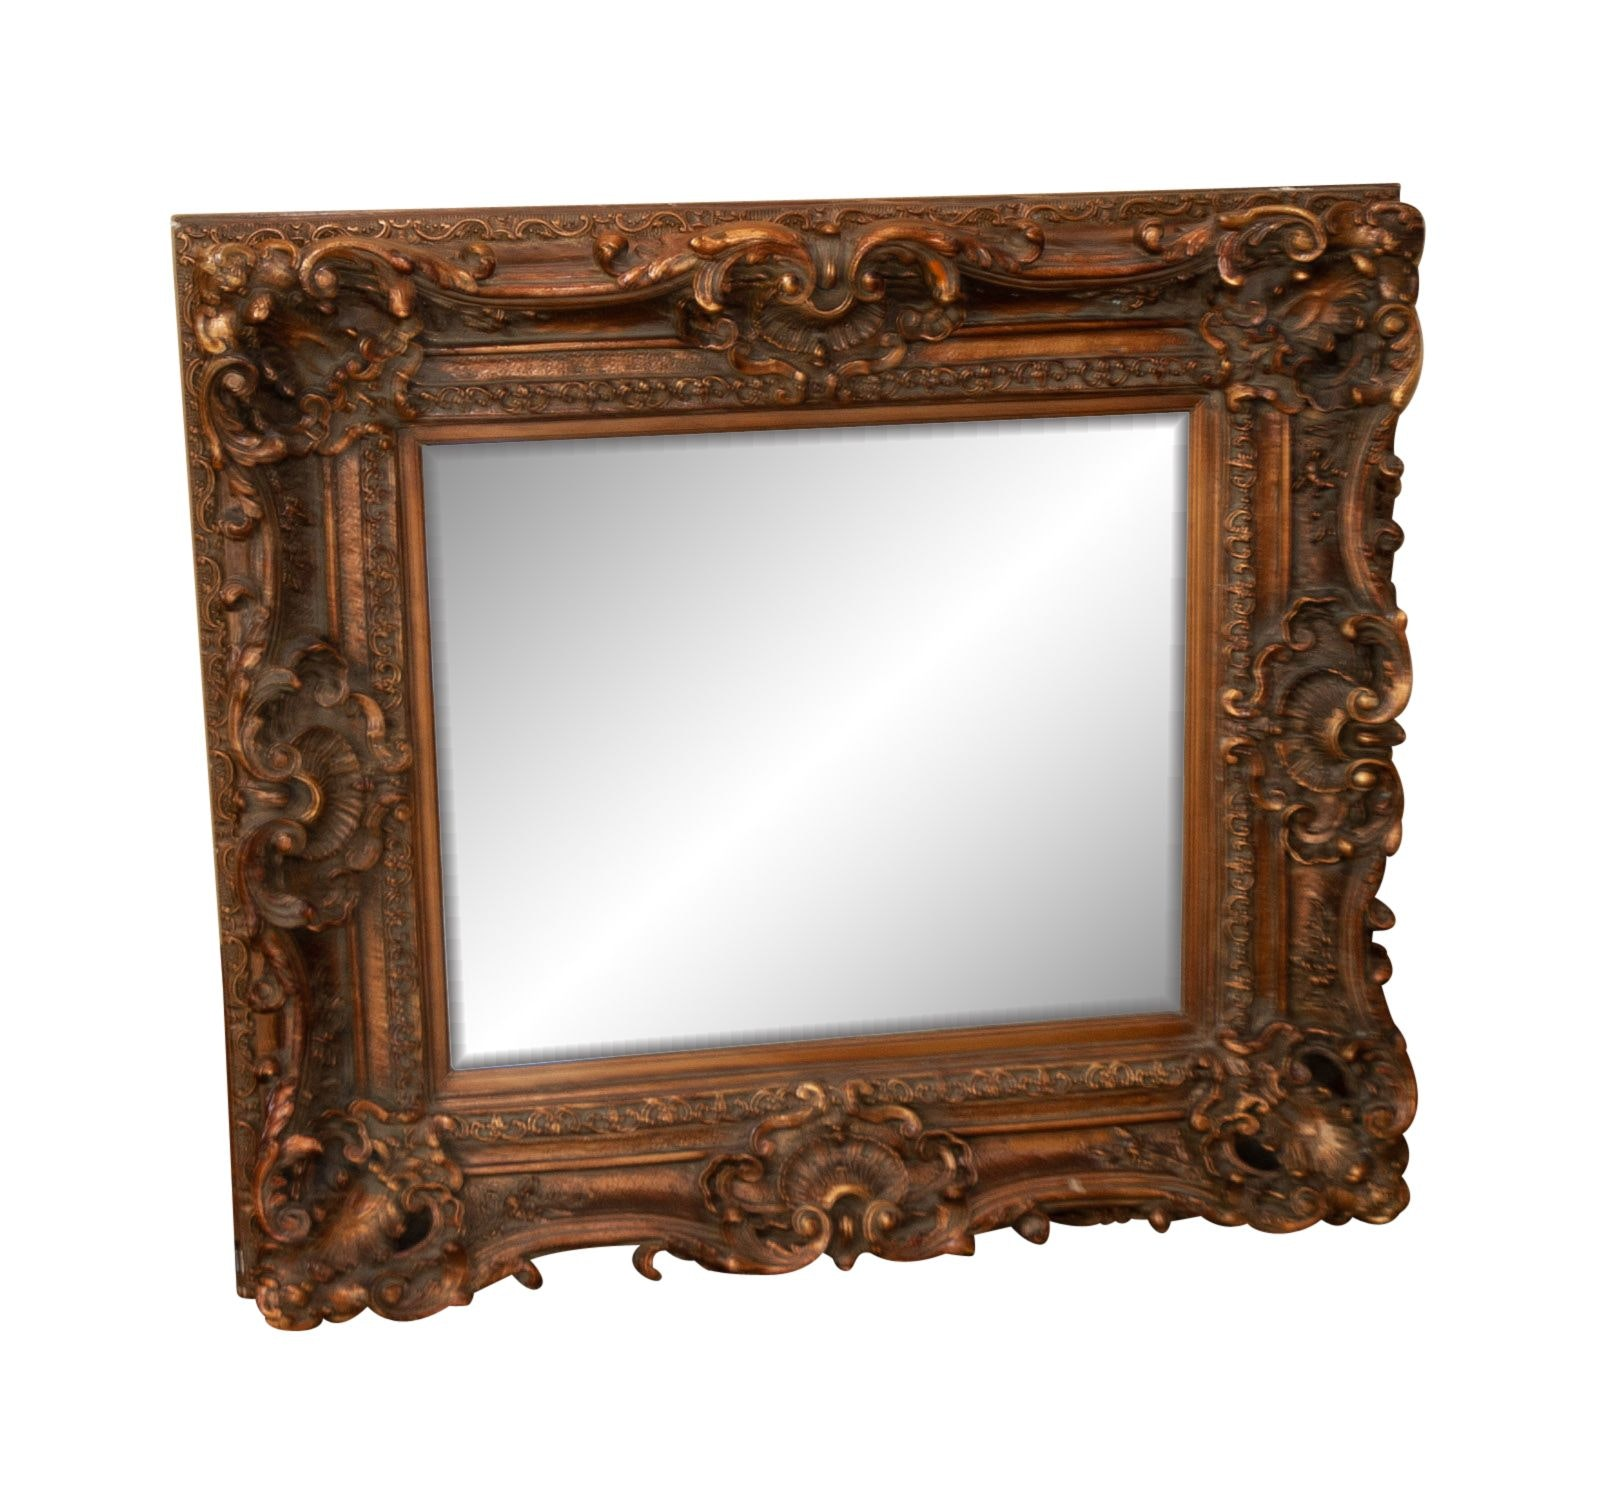 Rococo Style Wall Mirror with Rocialle Decoration